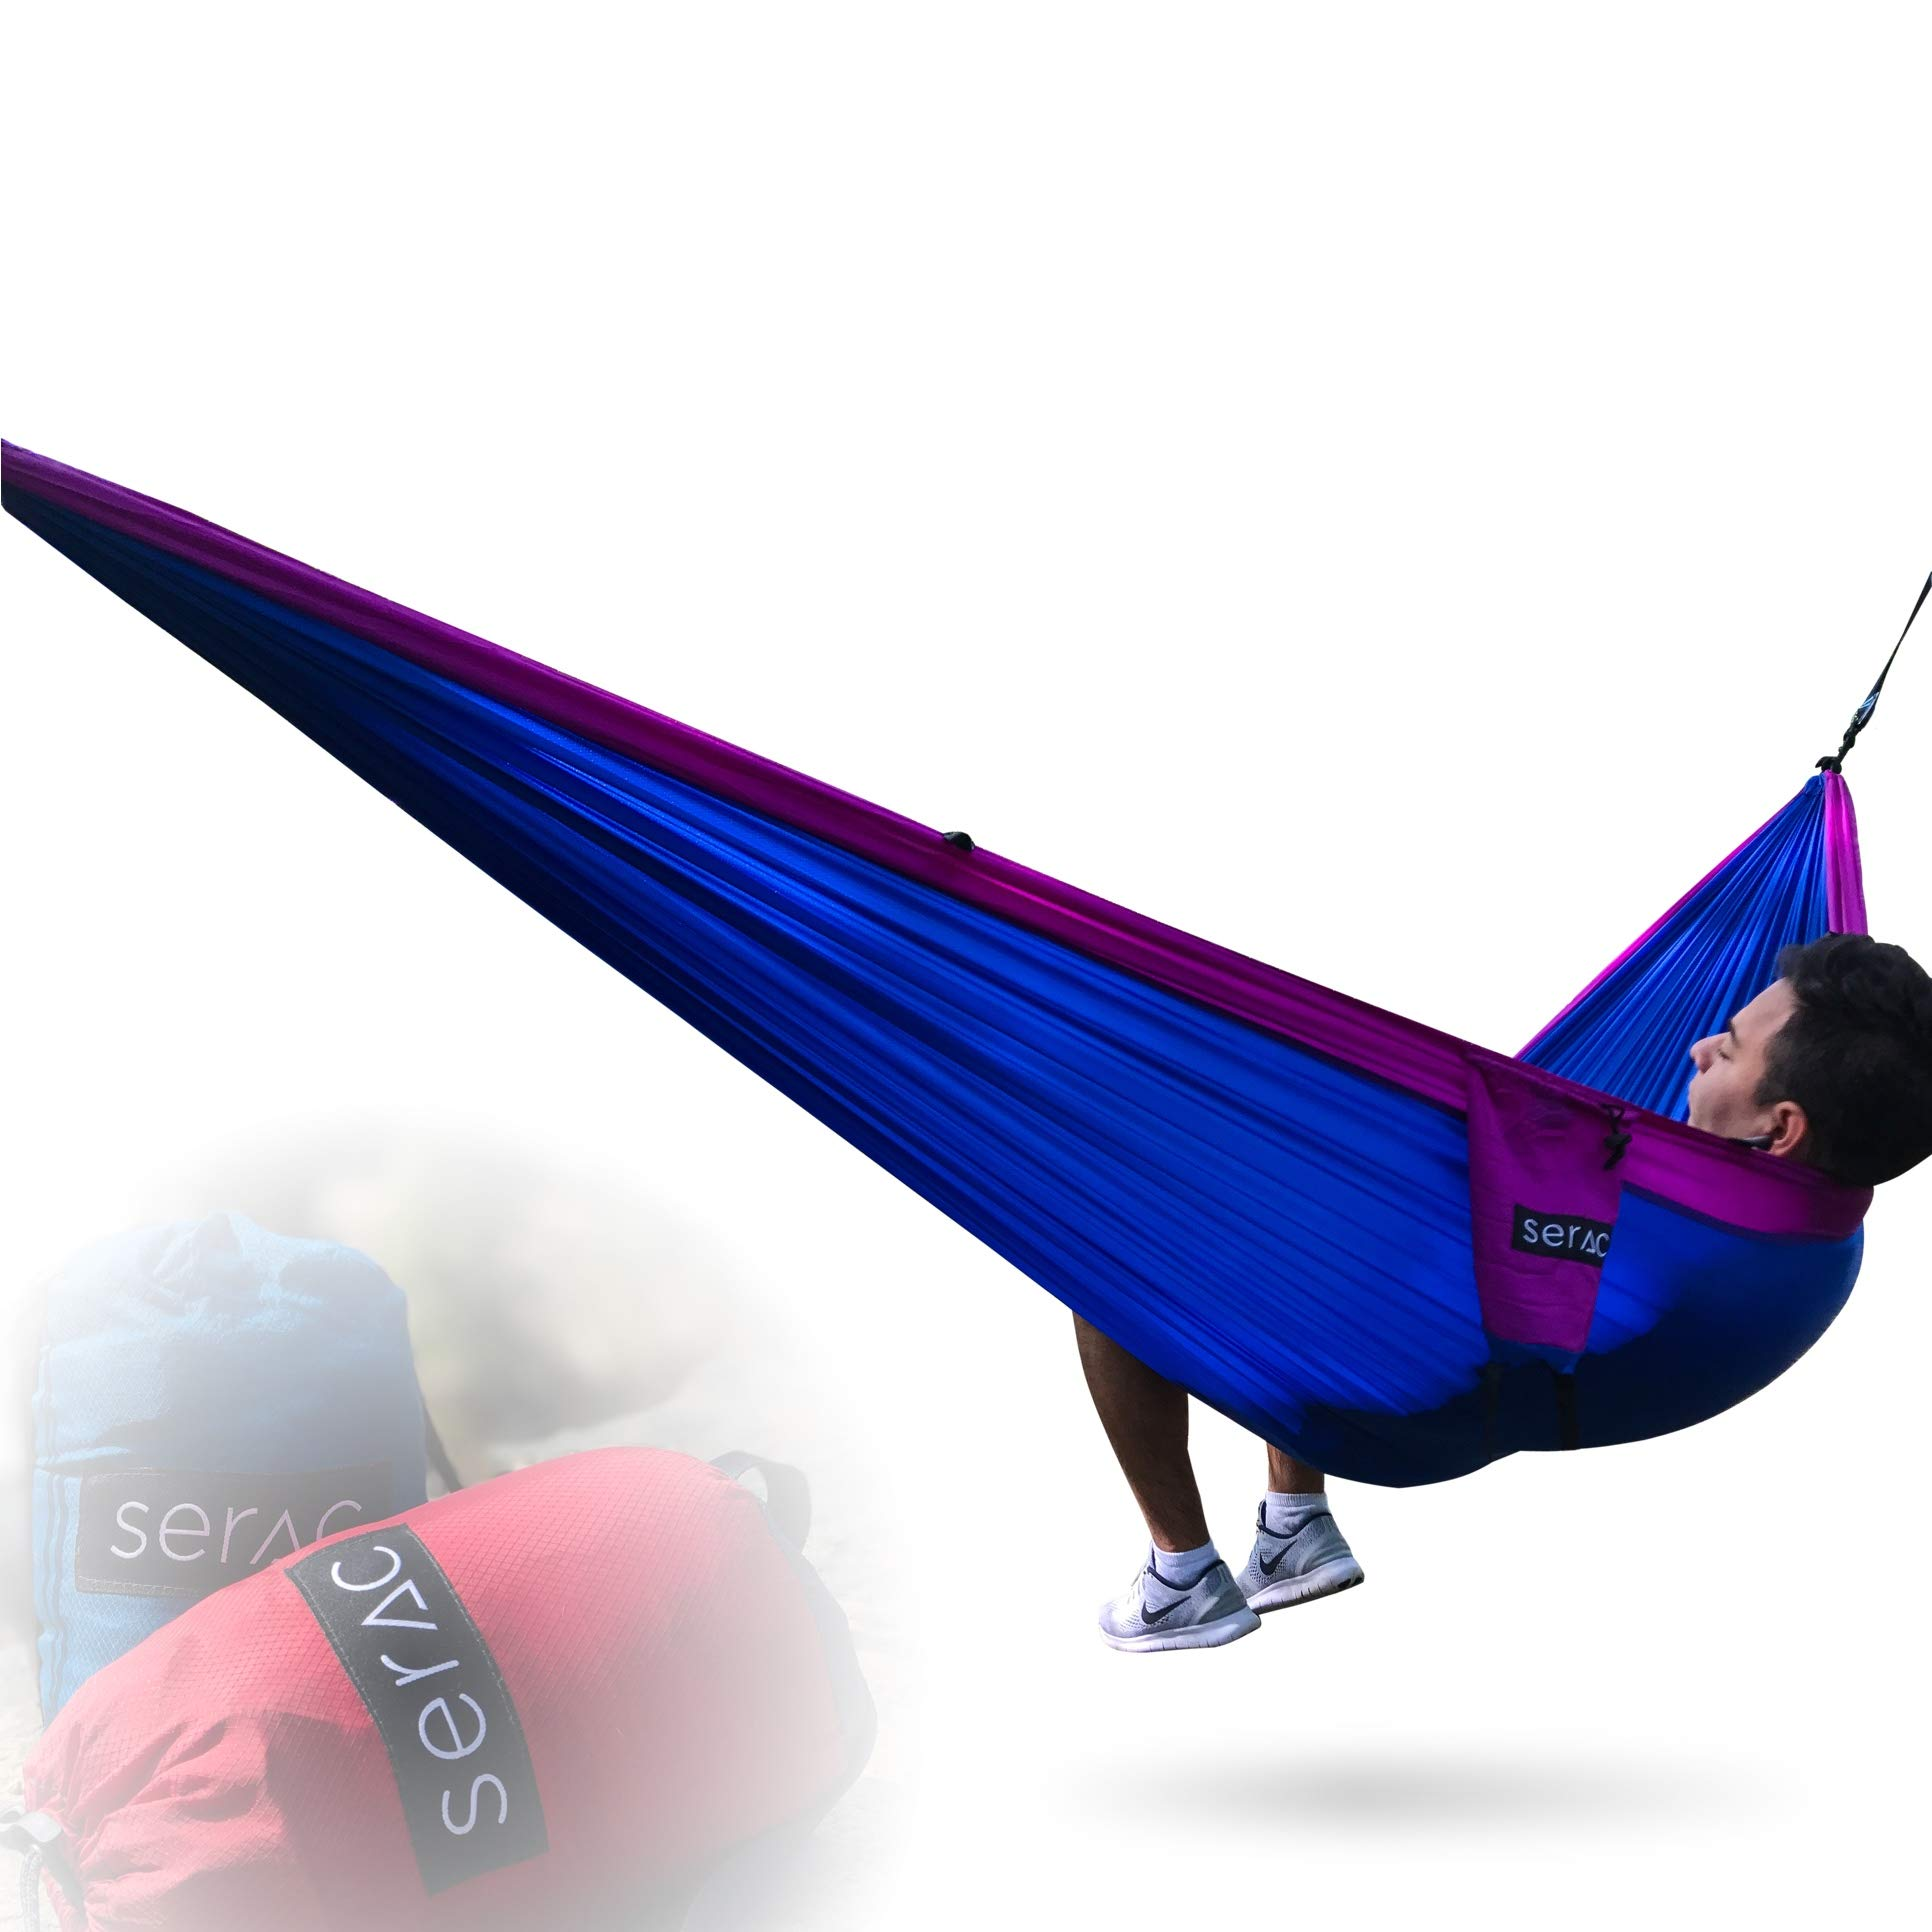 Serac [Premium Double Hammock & Strap Bundle] Sequoia XL Portable Double Camping Hammock with Ripstop Nylon and Quick-Hang Suspension System (Thistle Purple/Blue) by Serac